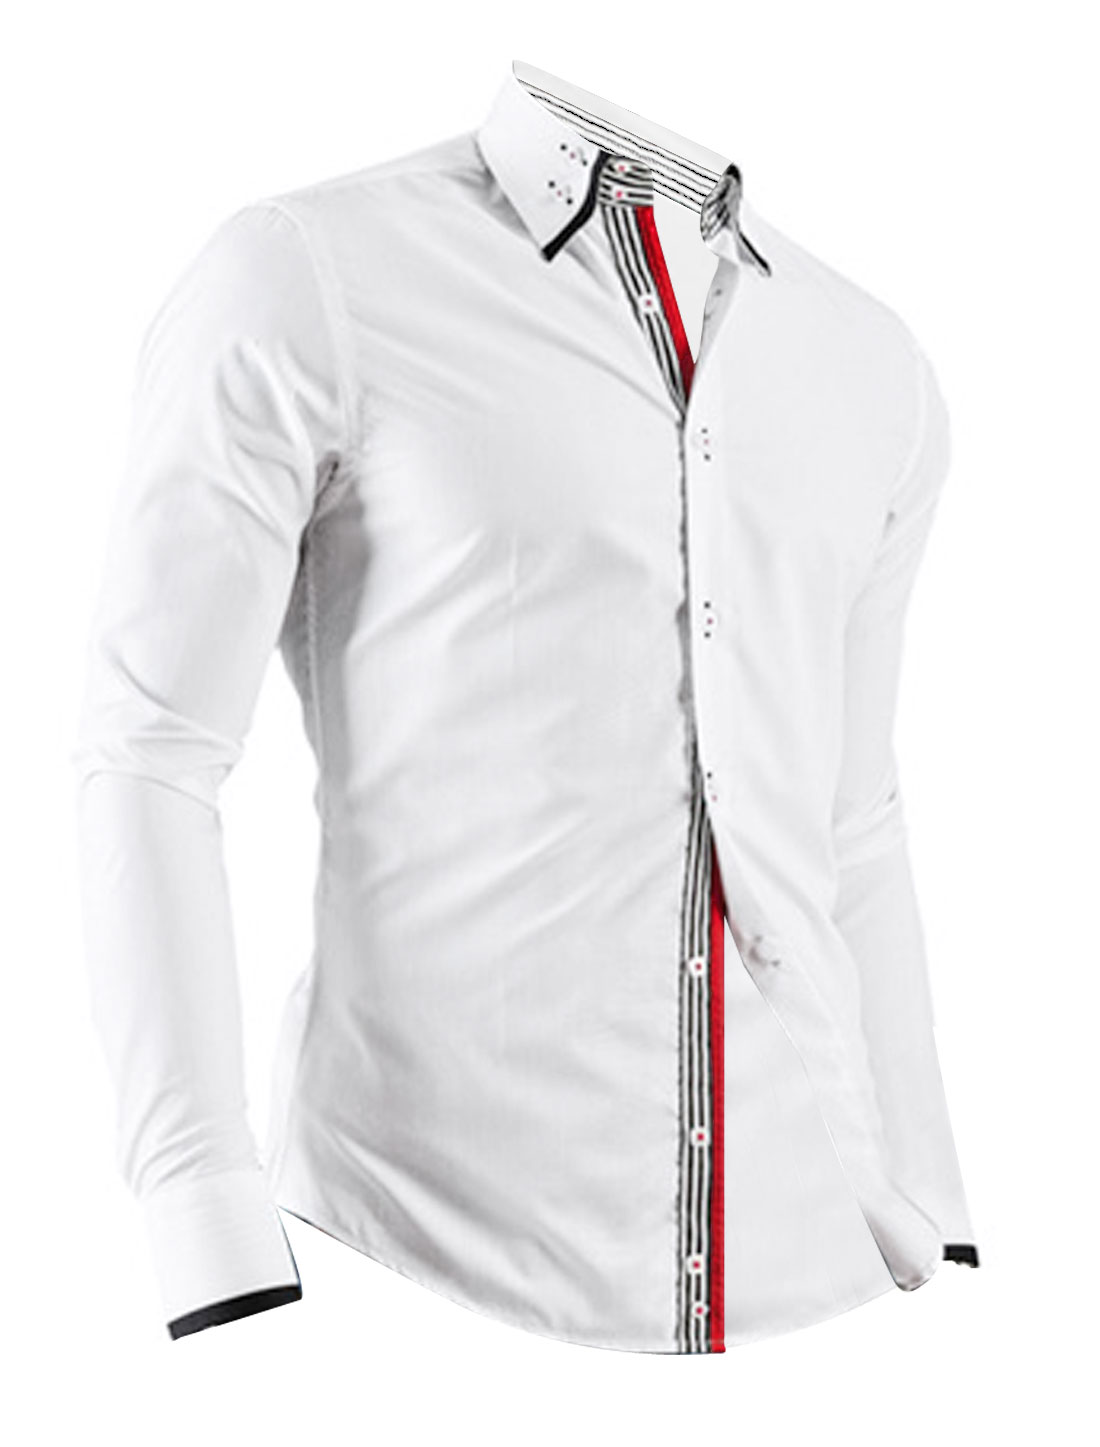 Men Long Sleeve Single Breasted Buttons Cuffs Casual Shirt White M